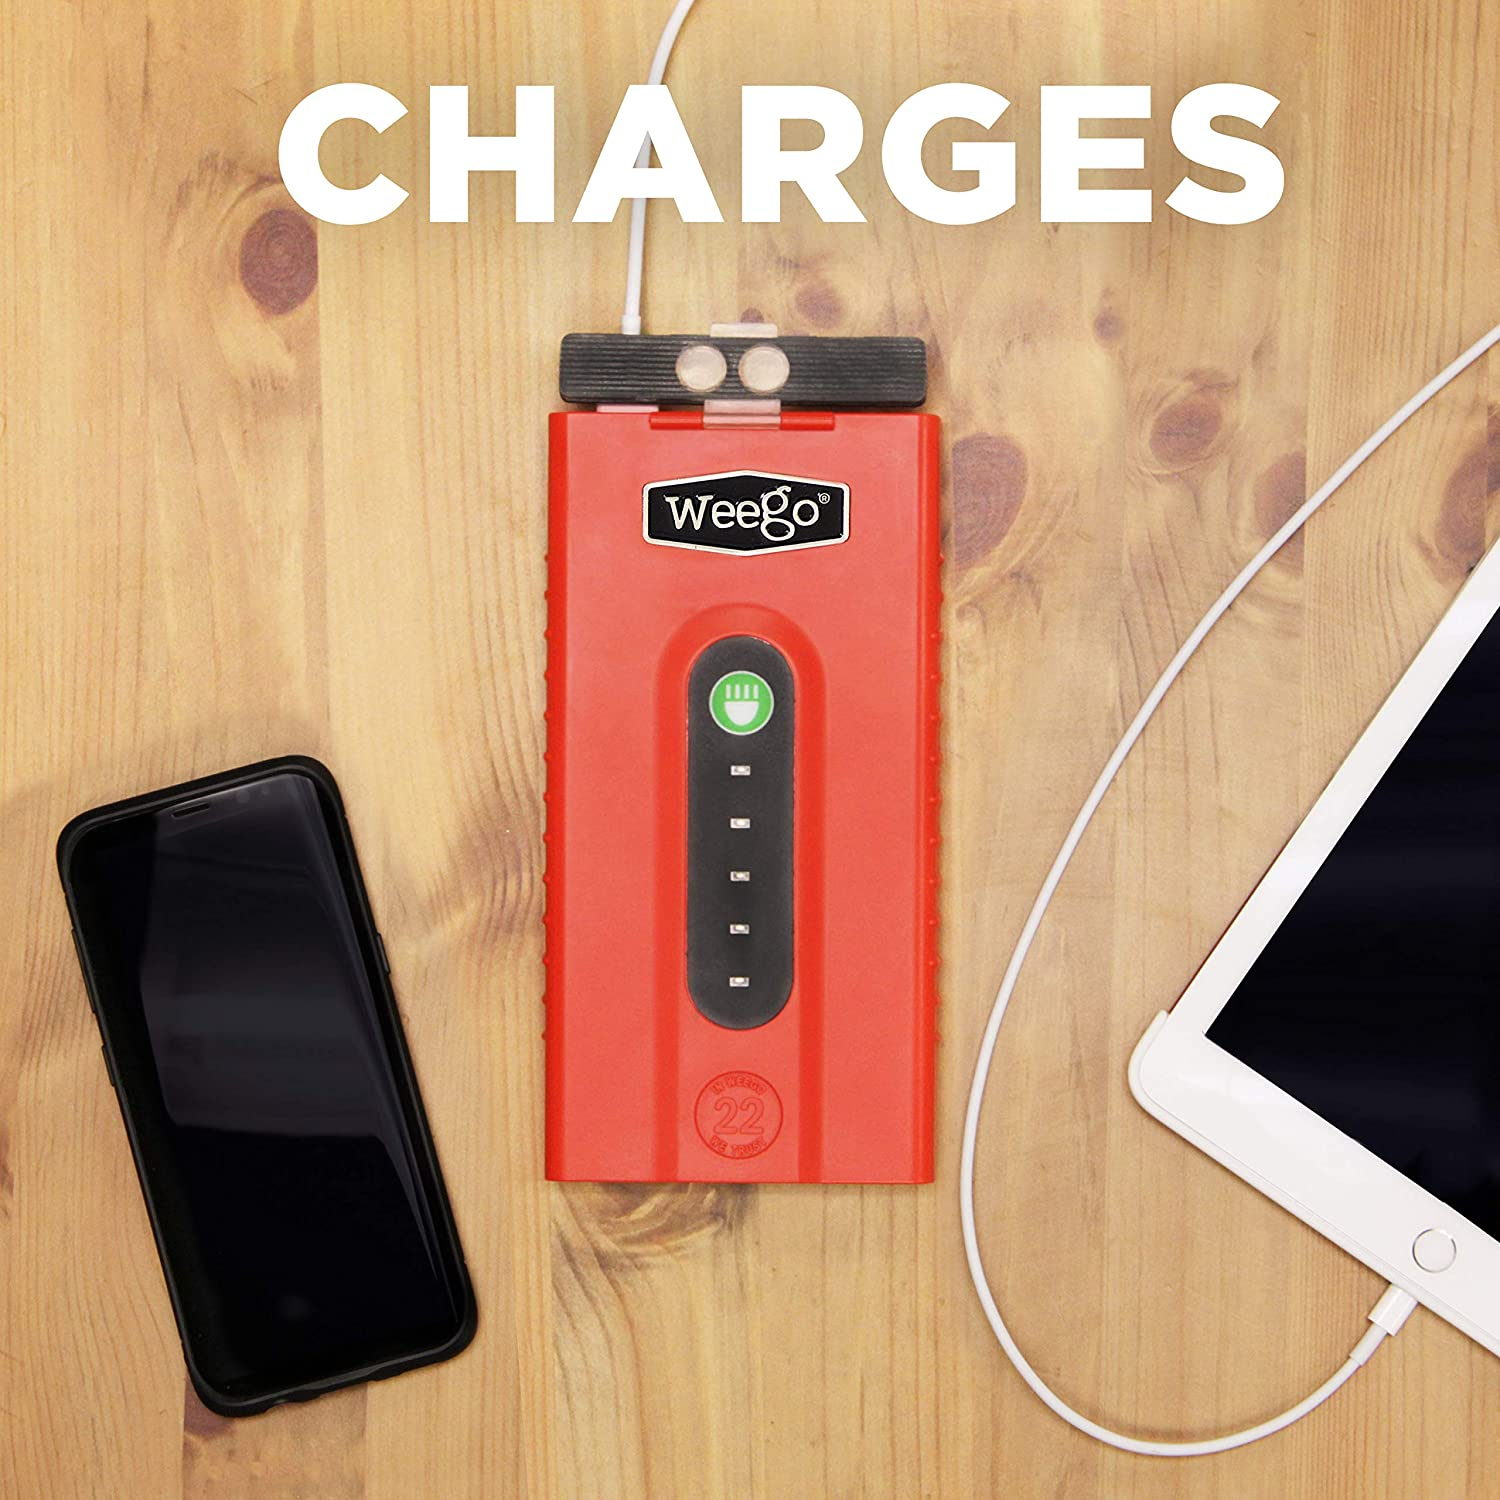 2500 Peak 600 Cranking Amps High Performance Lithium Ion Jump Starter Quick Charges Phones 600 Lumen LED Flashlight Water Resistant NEW 2019 Model WEEGO 66.1 Jump Starting Power Pack